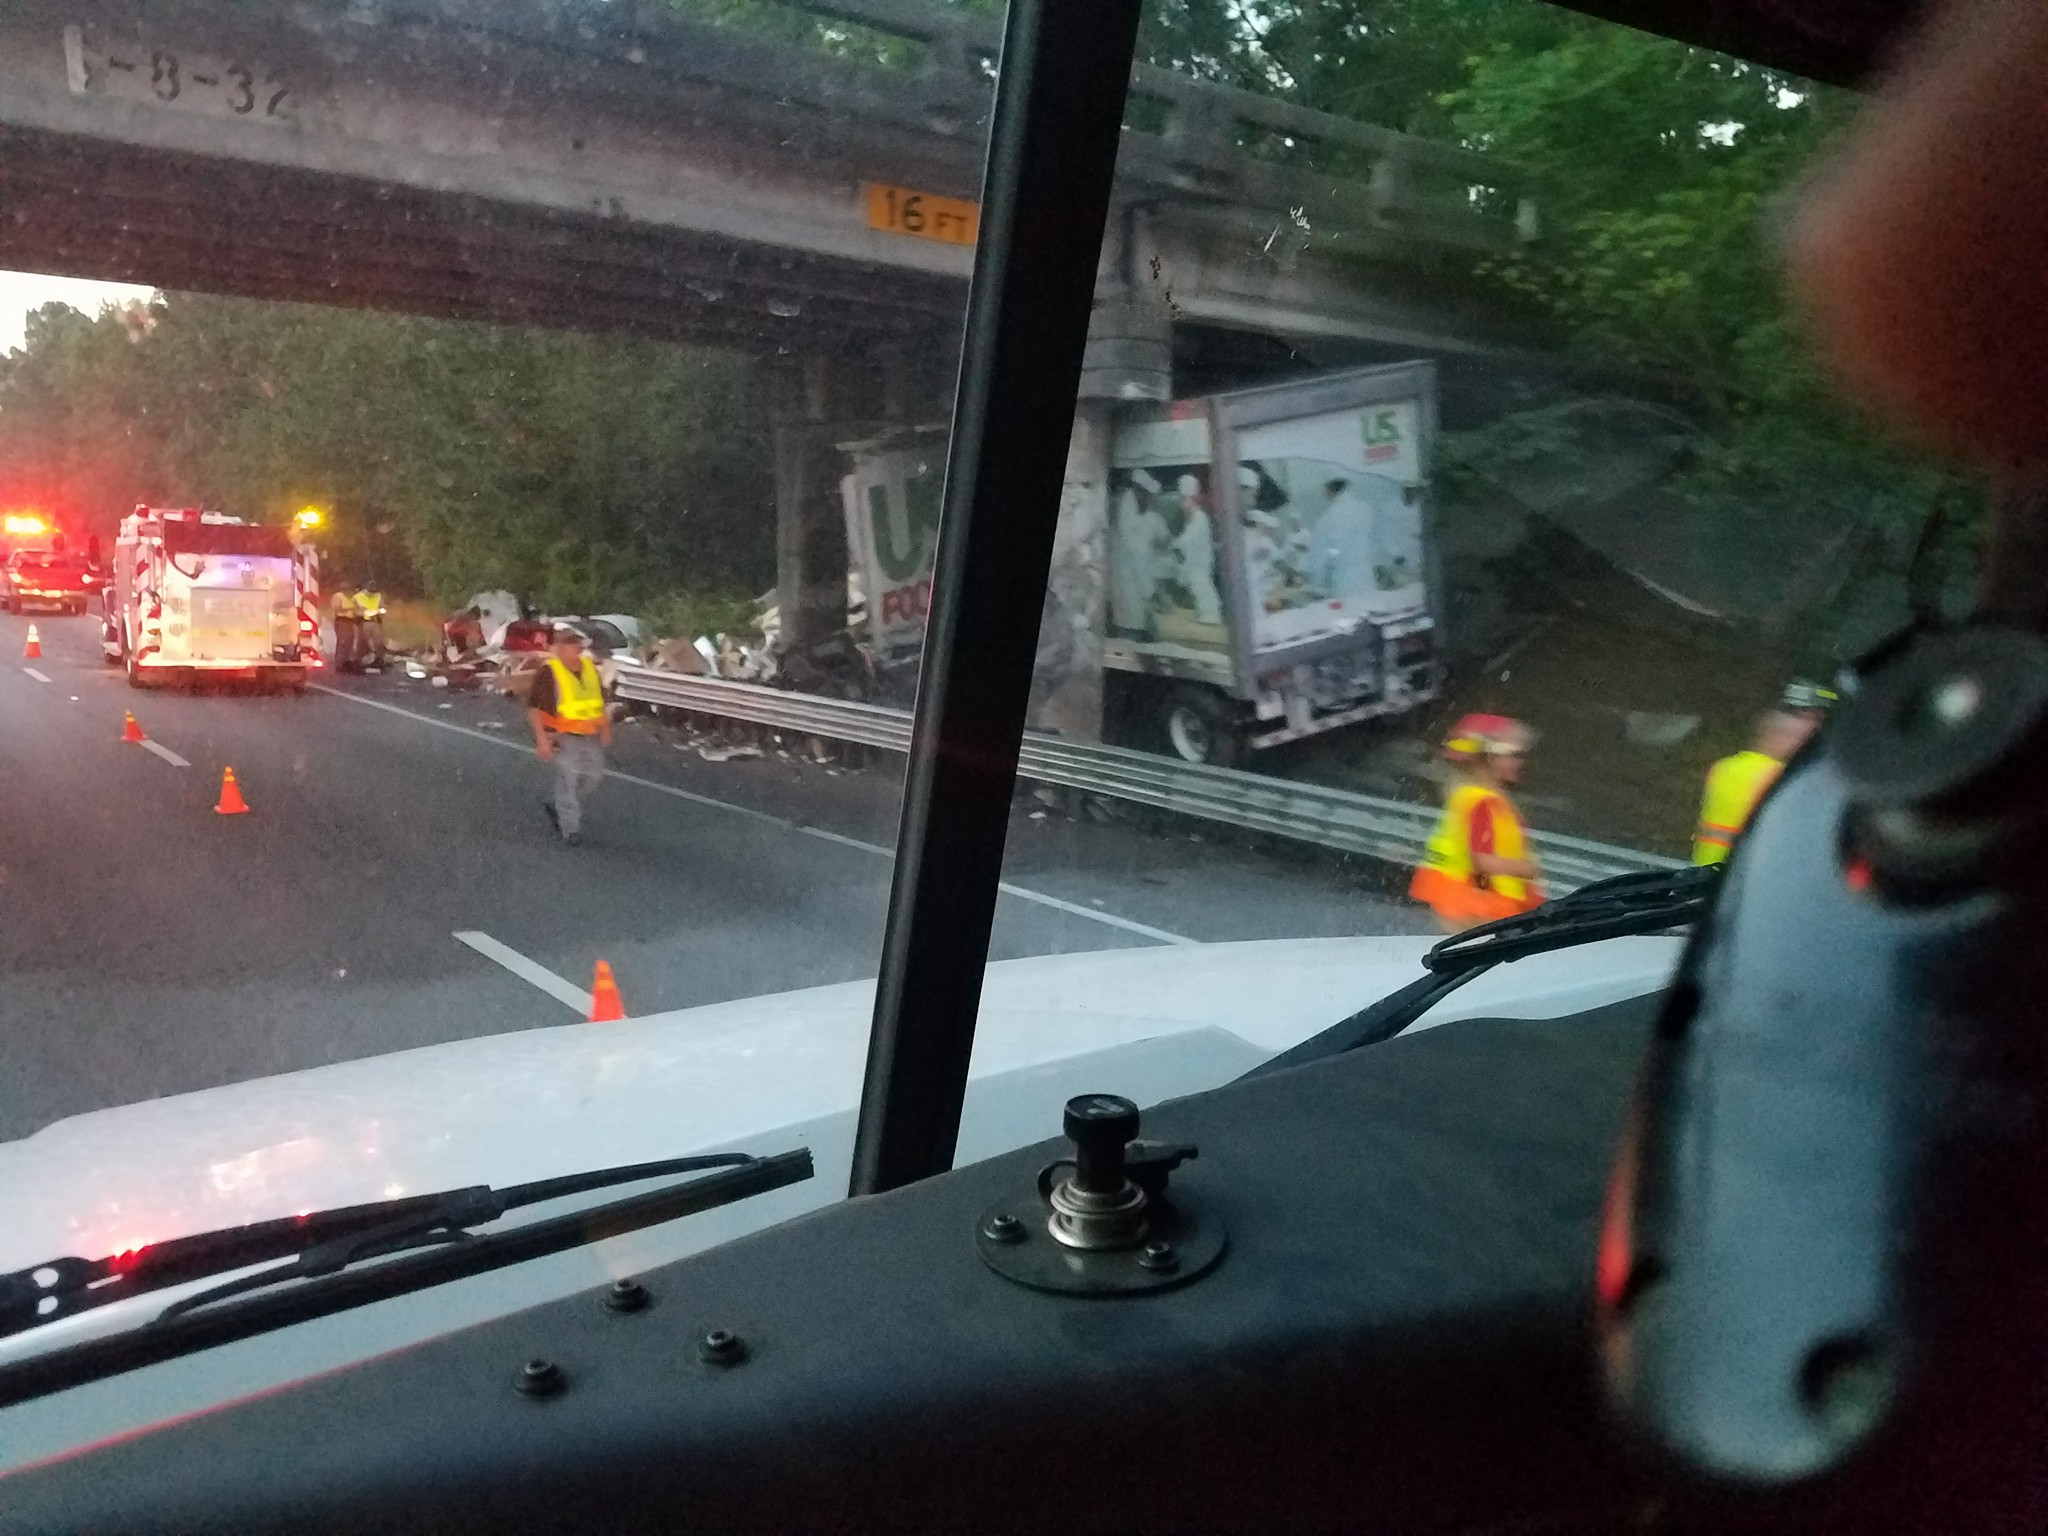 This photo from the scene was provided by an ABC News 4 viewer stuck in traffic in the area Friday morning.